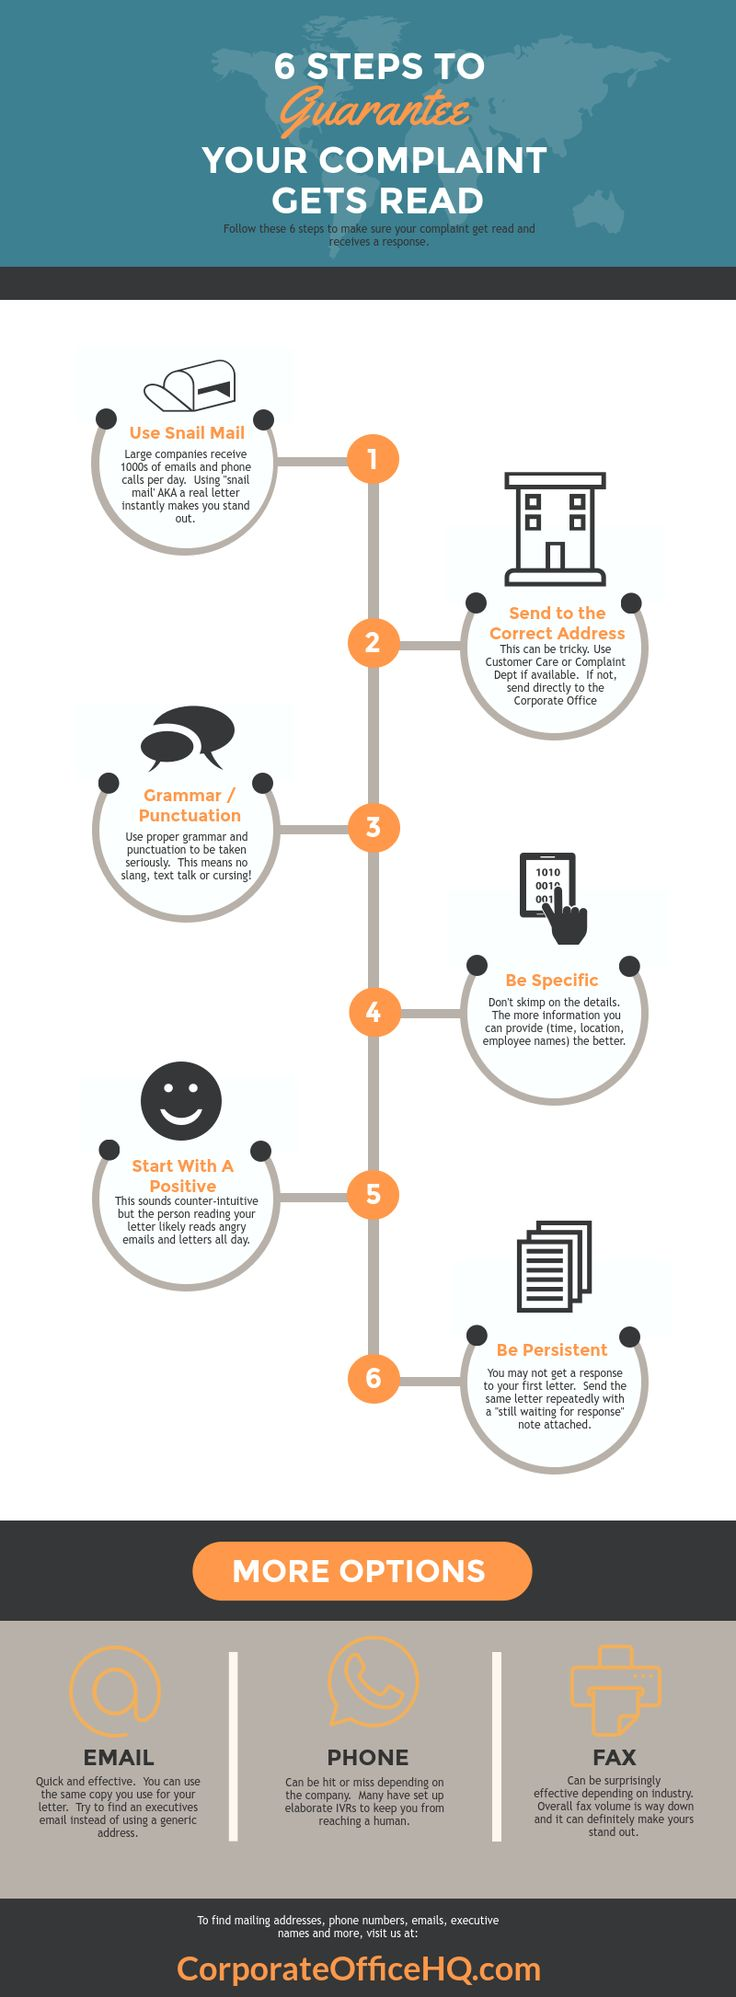 Get Your Complaint Read (In 6 Easy Steps) #Infographic #Business #CustomerService